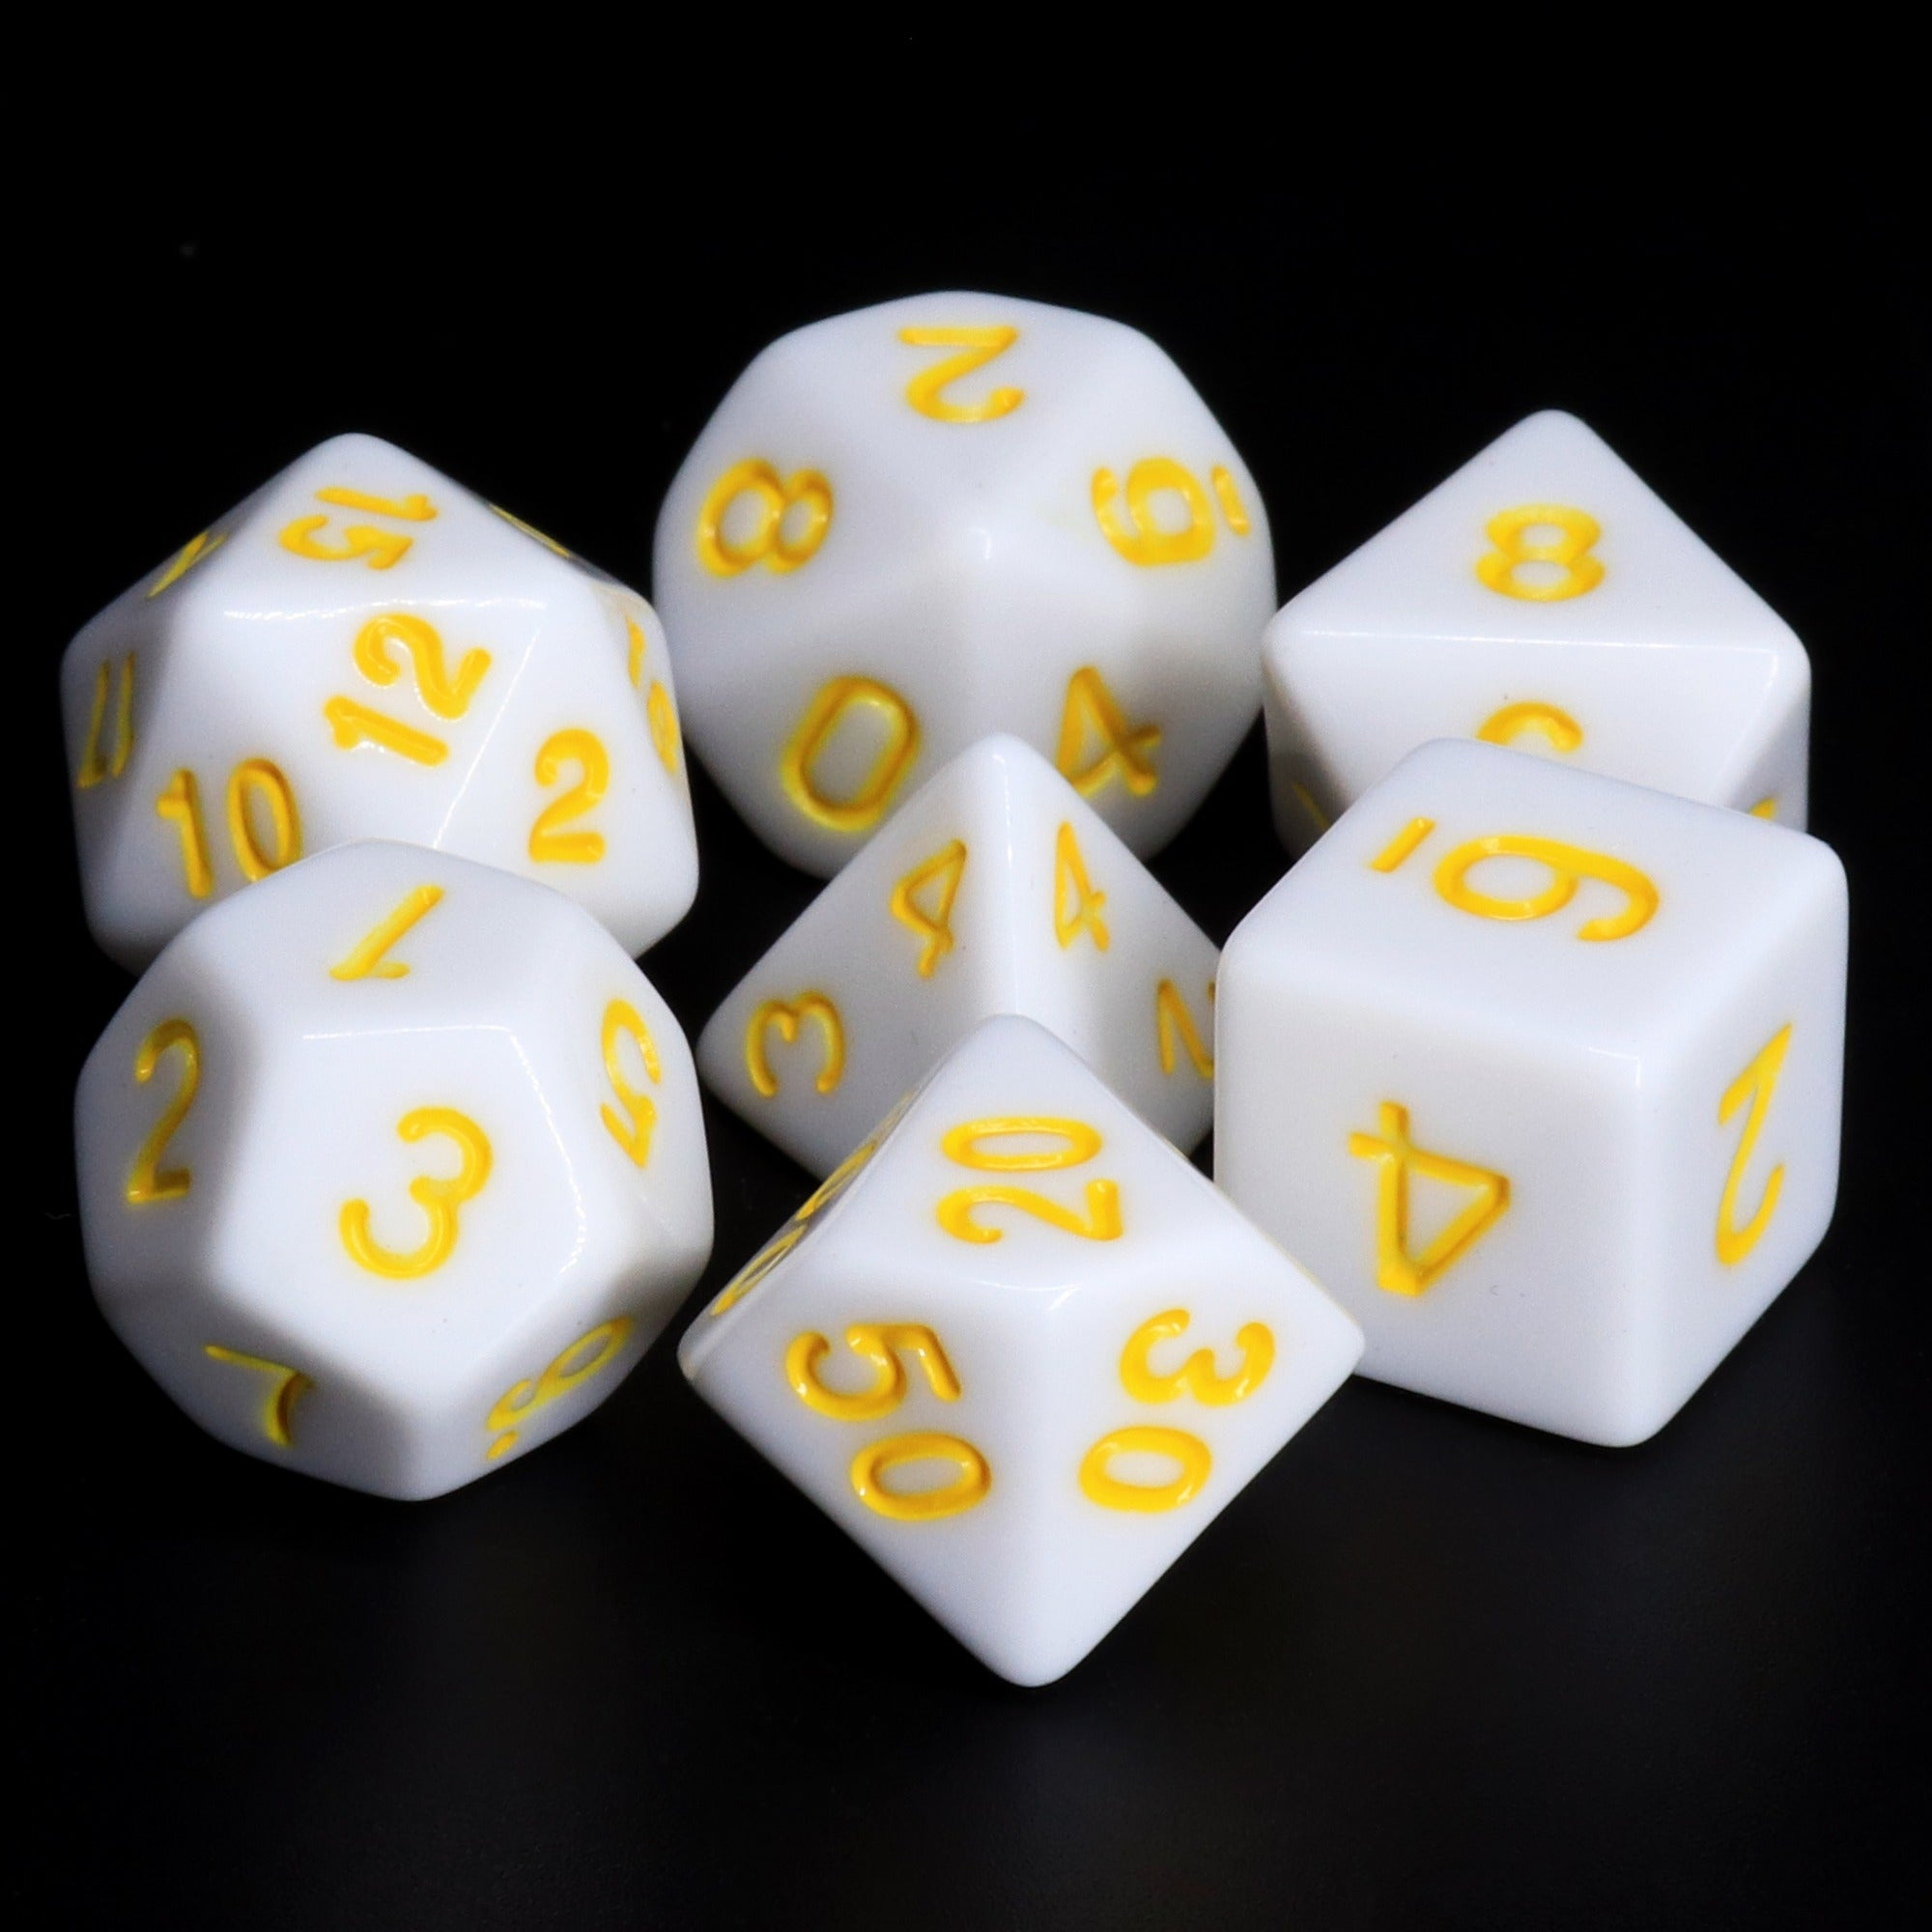 White Opaque dice (Yellow font)